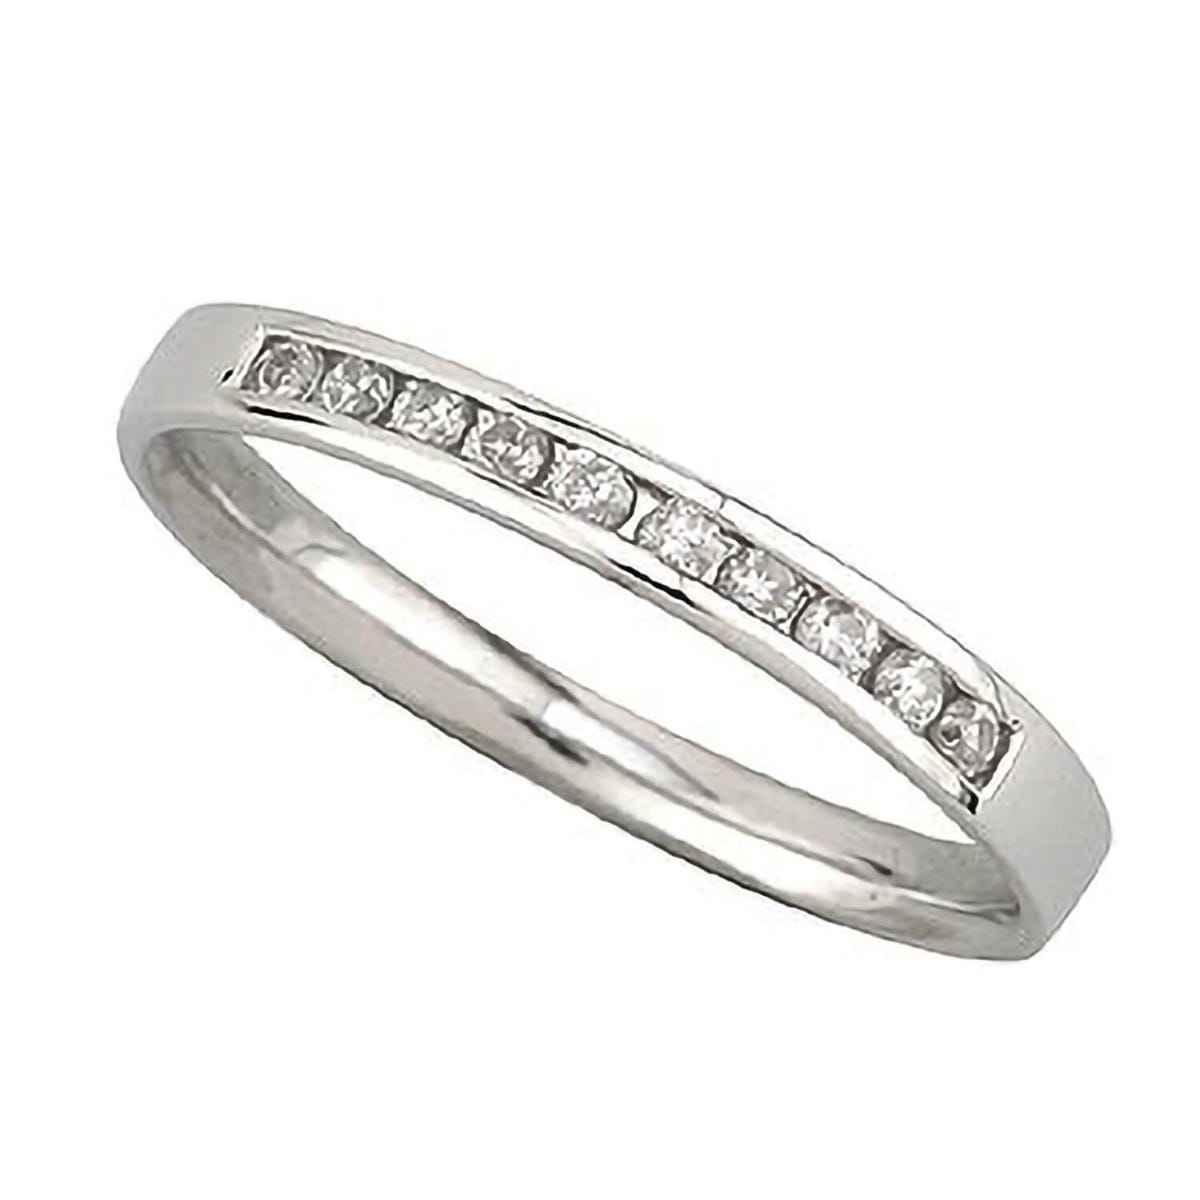 Platinum 0.15 carat diamond ring